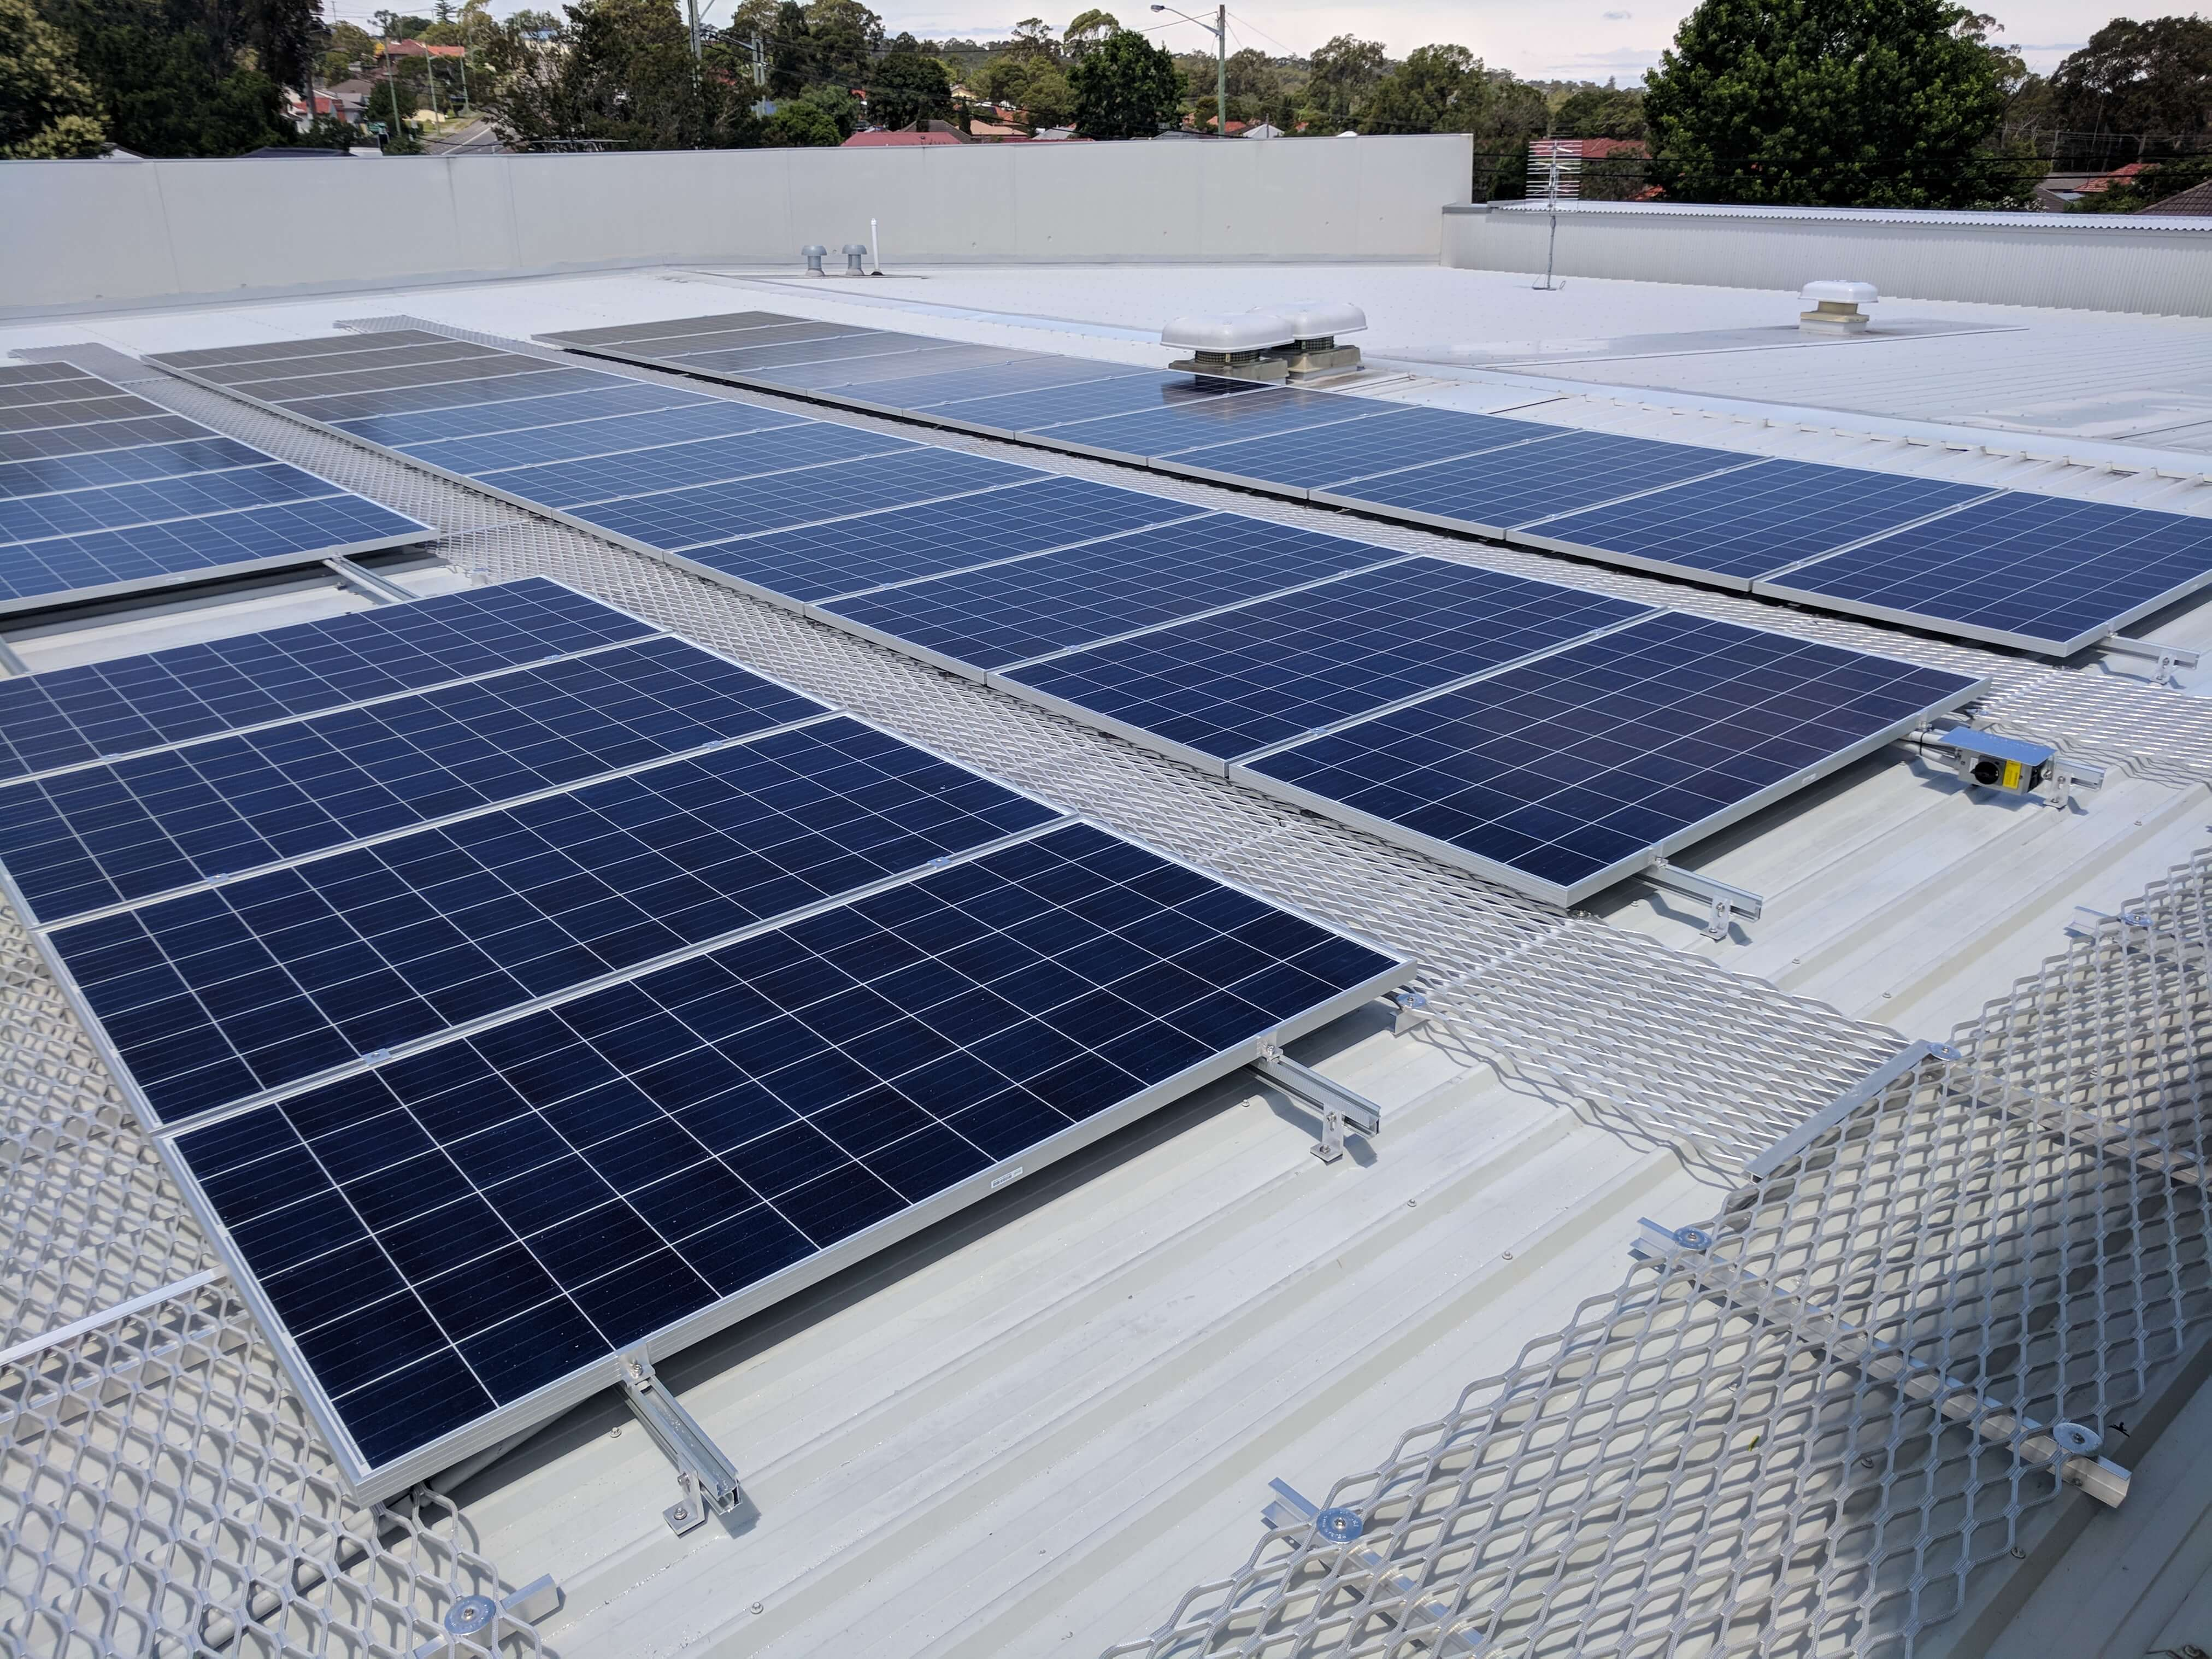 Solar panels in commercial installation